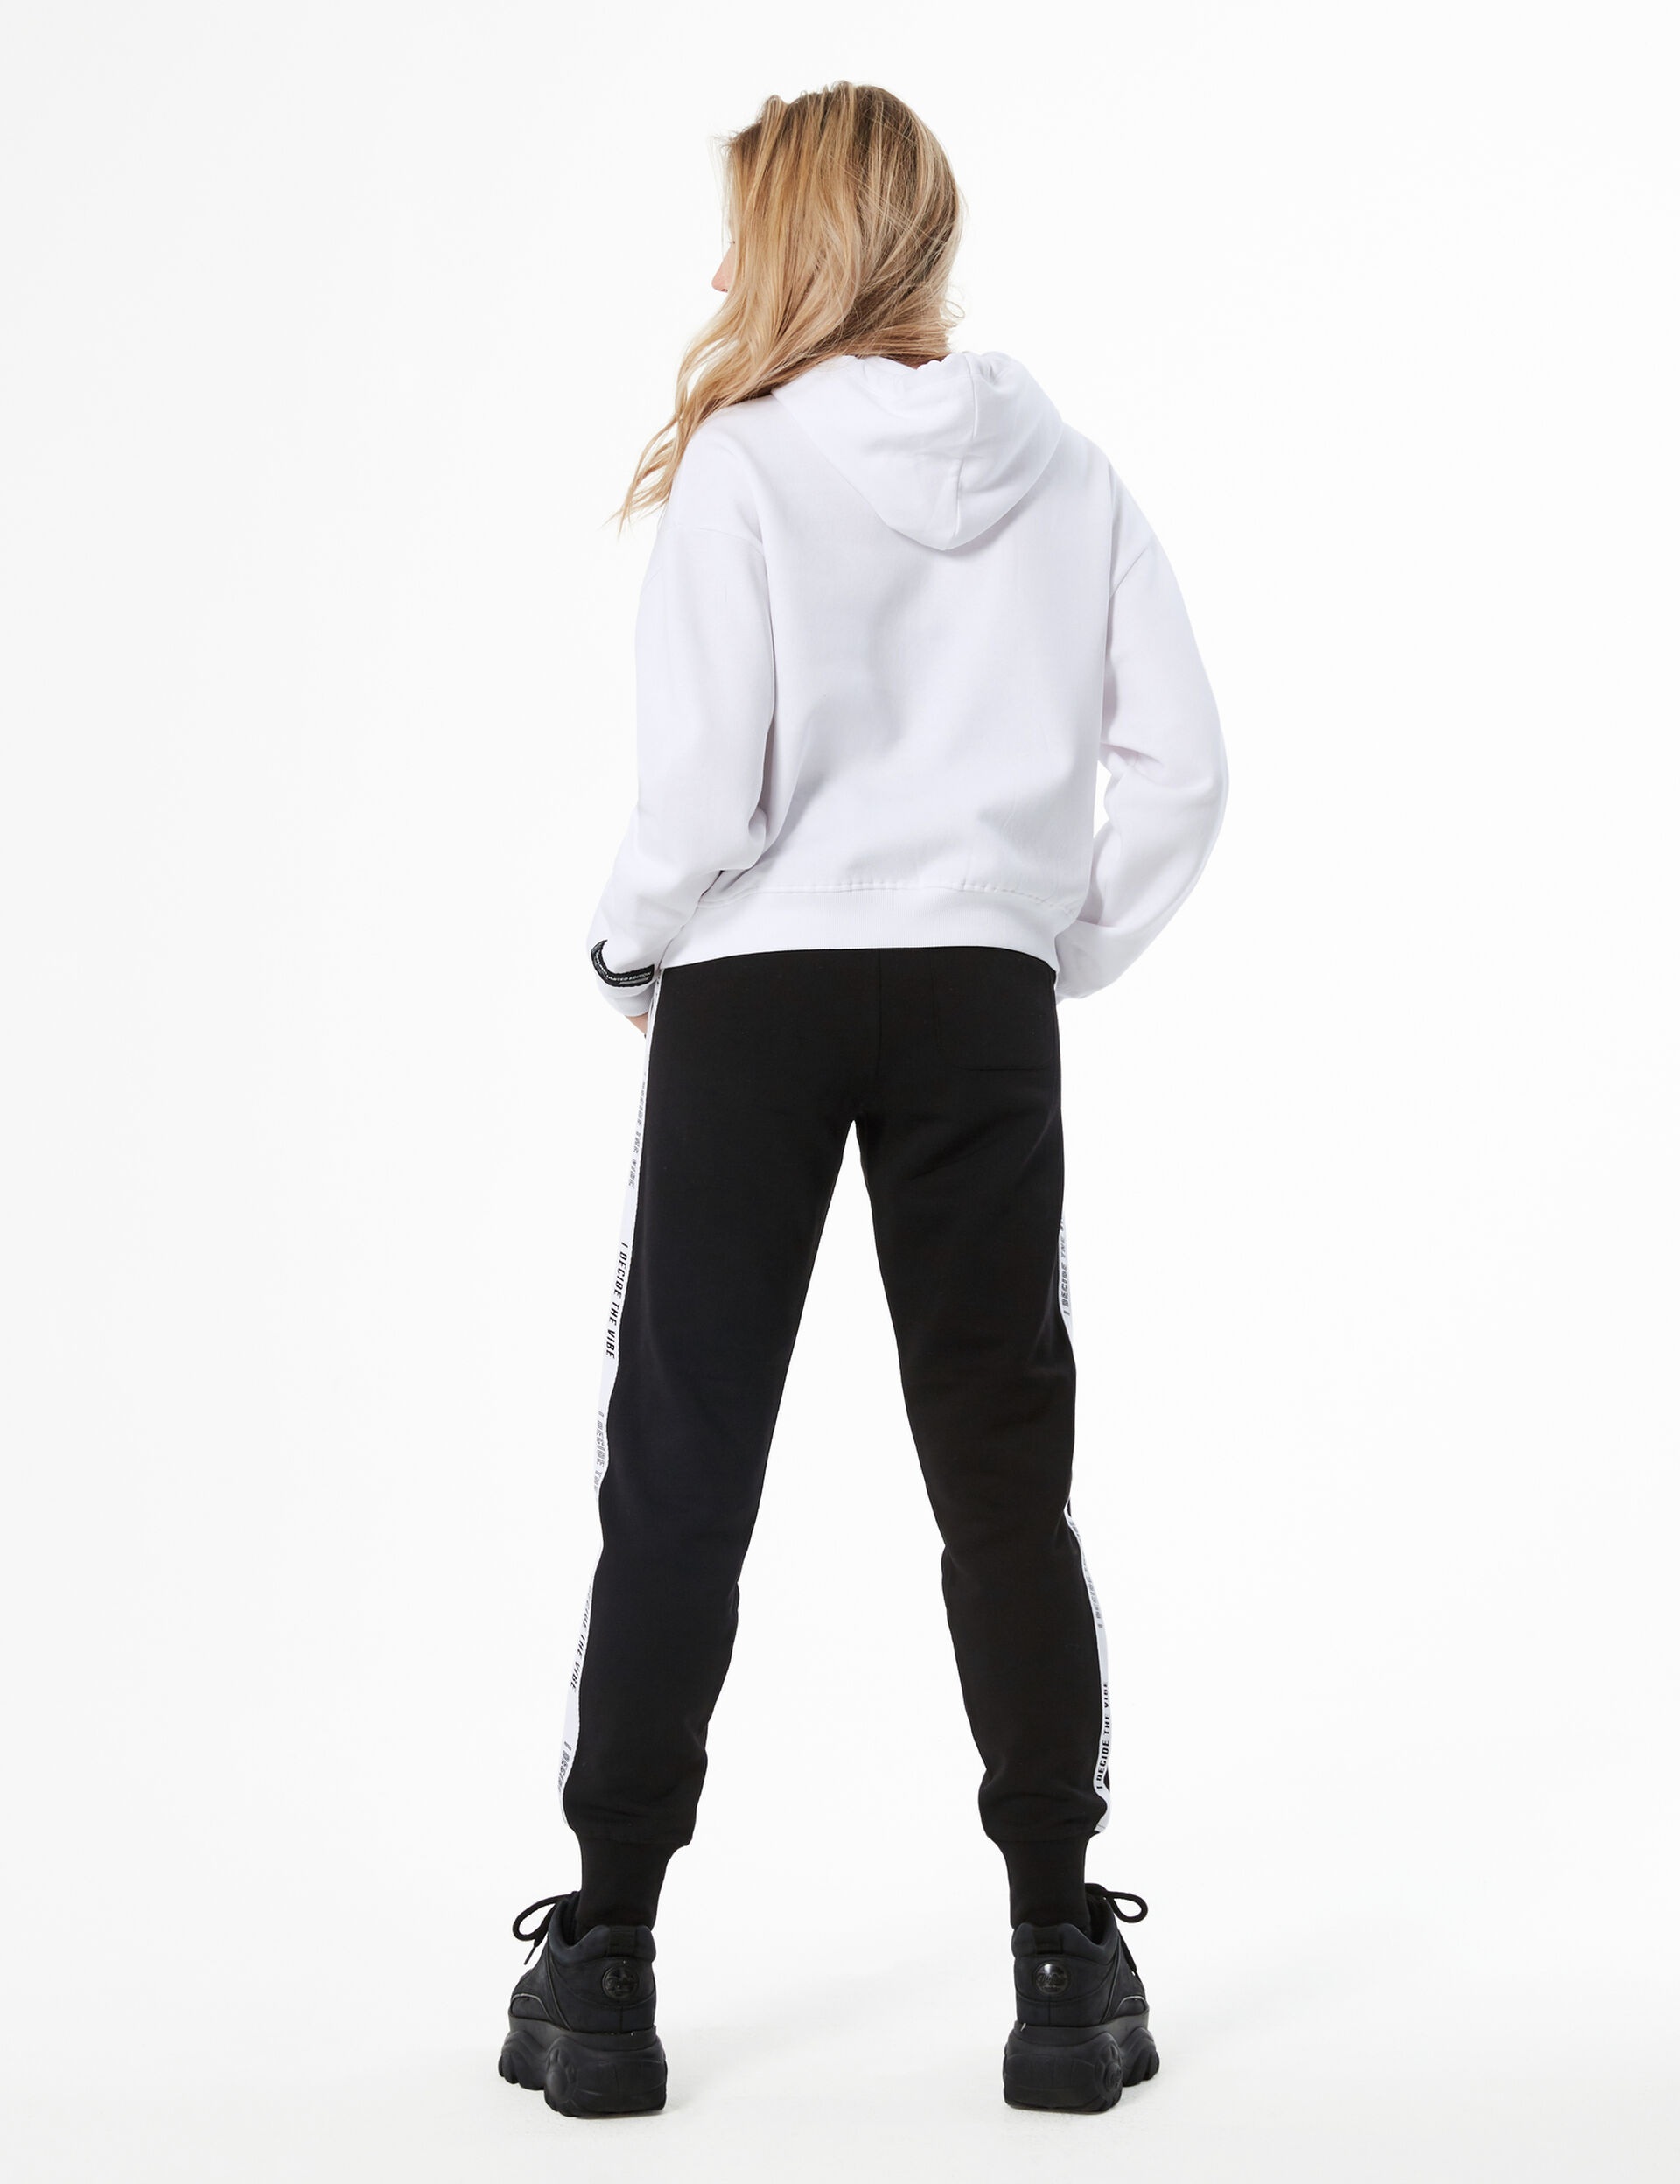 Joggers with text design trim detail